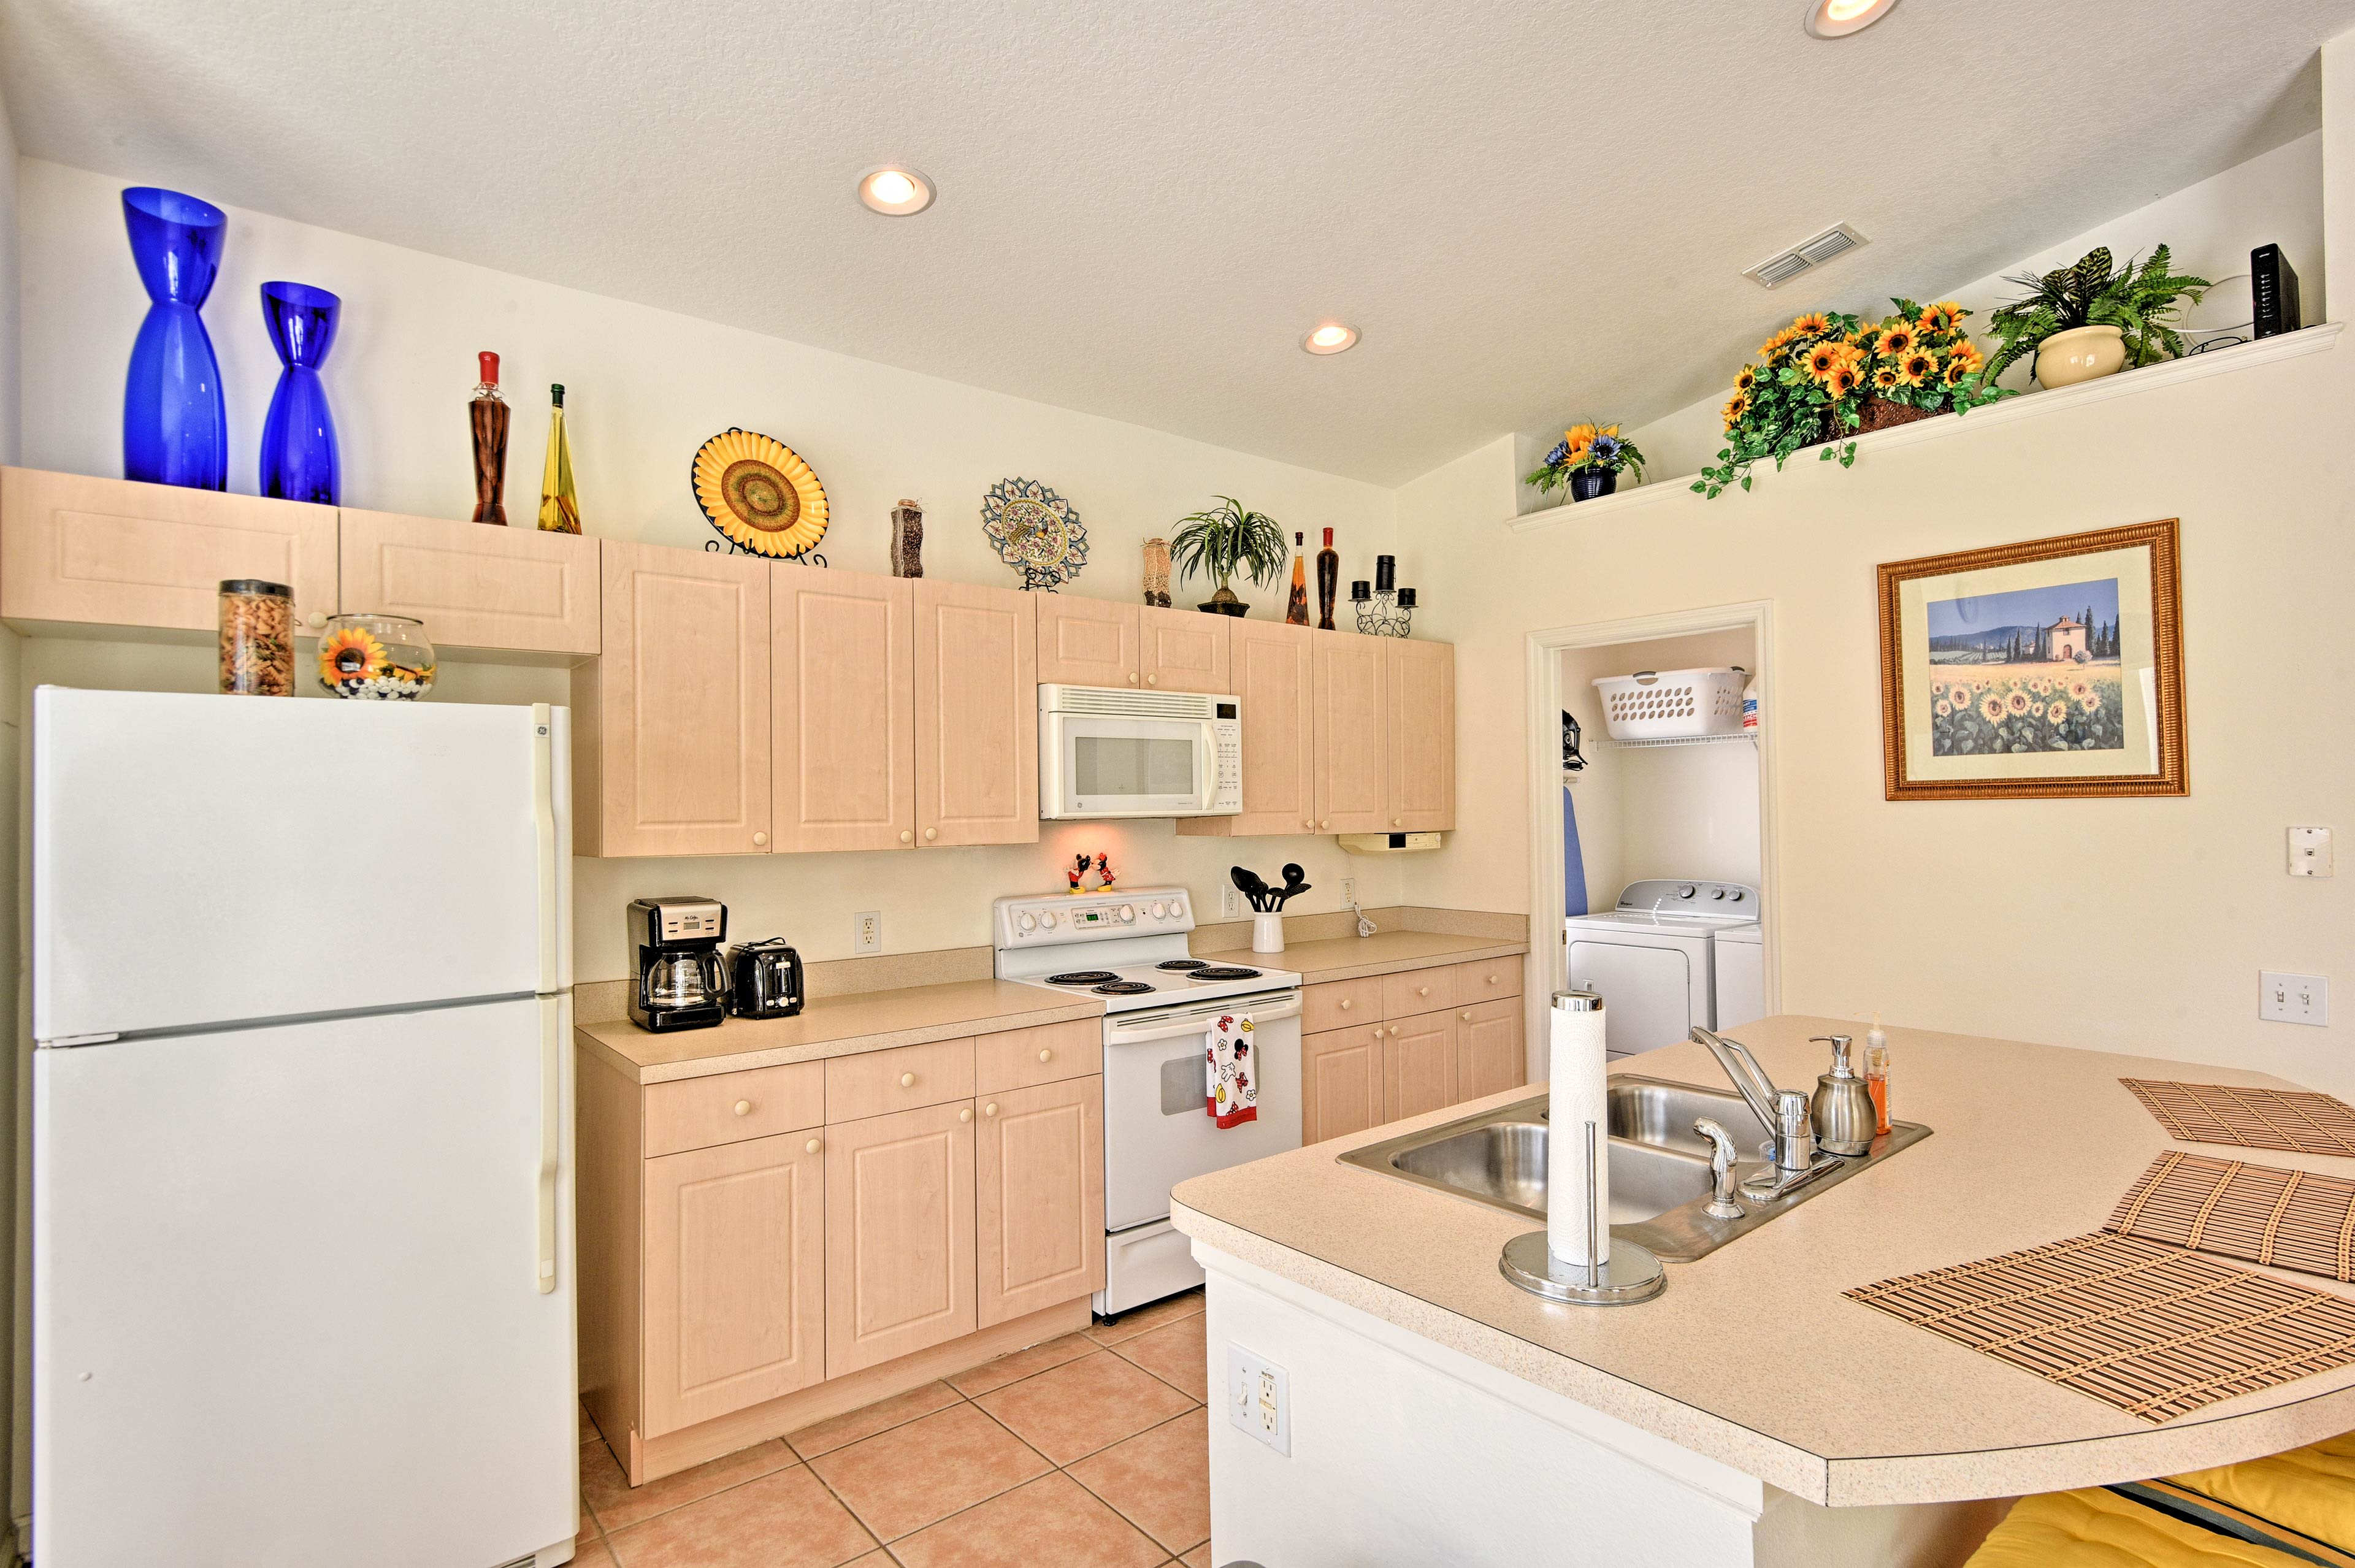 Whip up tasty recipes in the fully equipped kitchen.